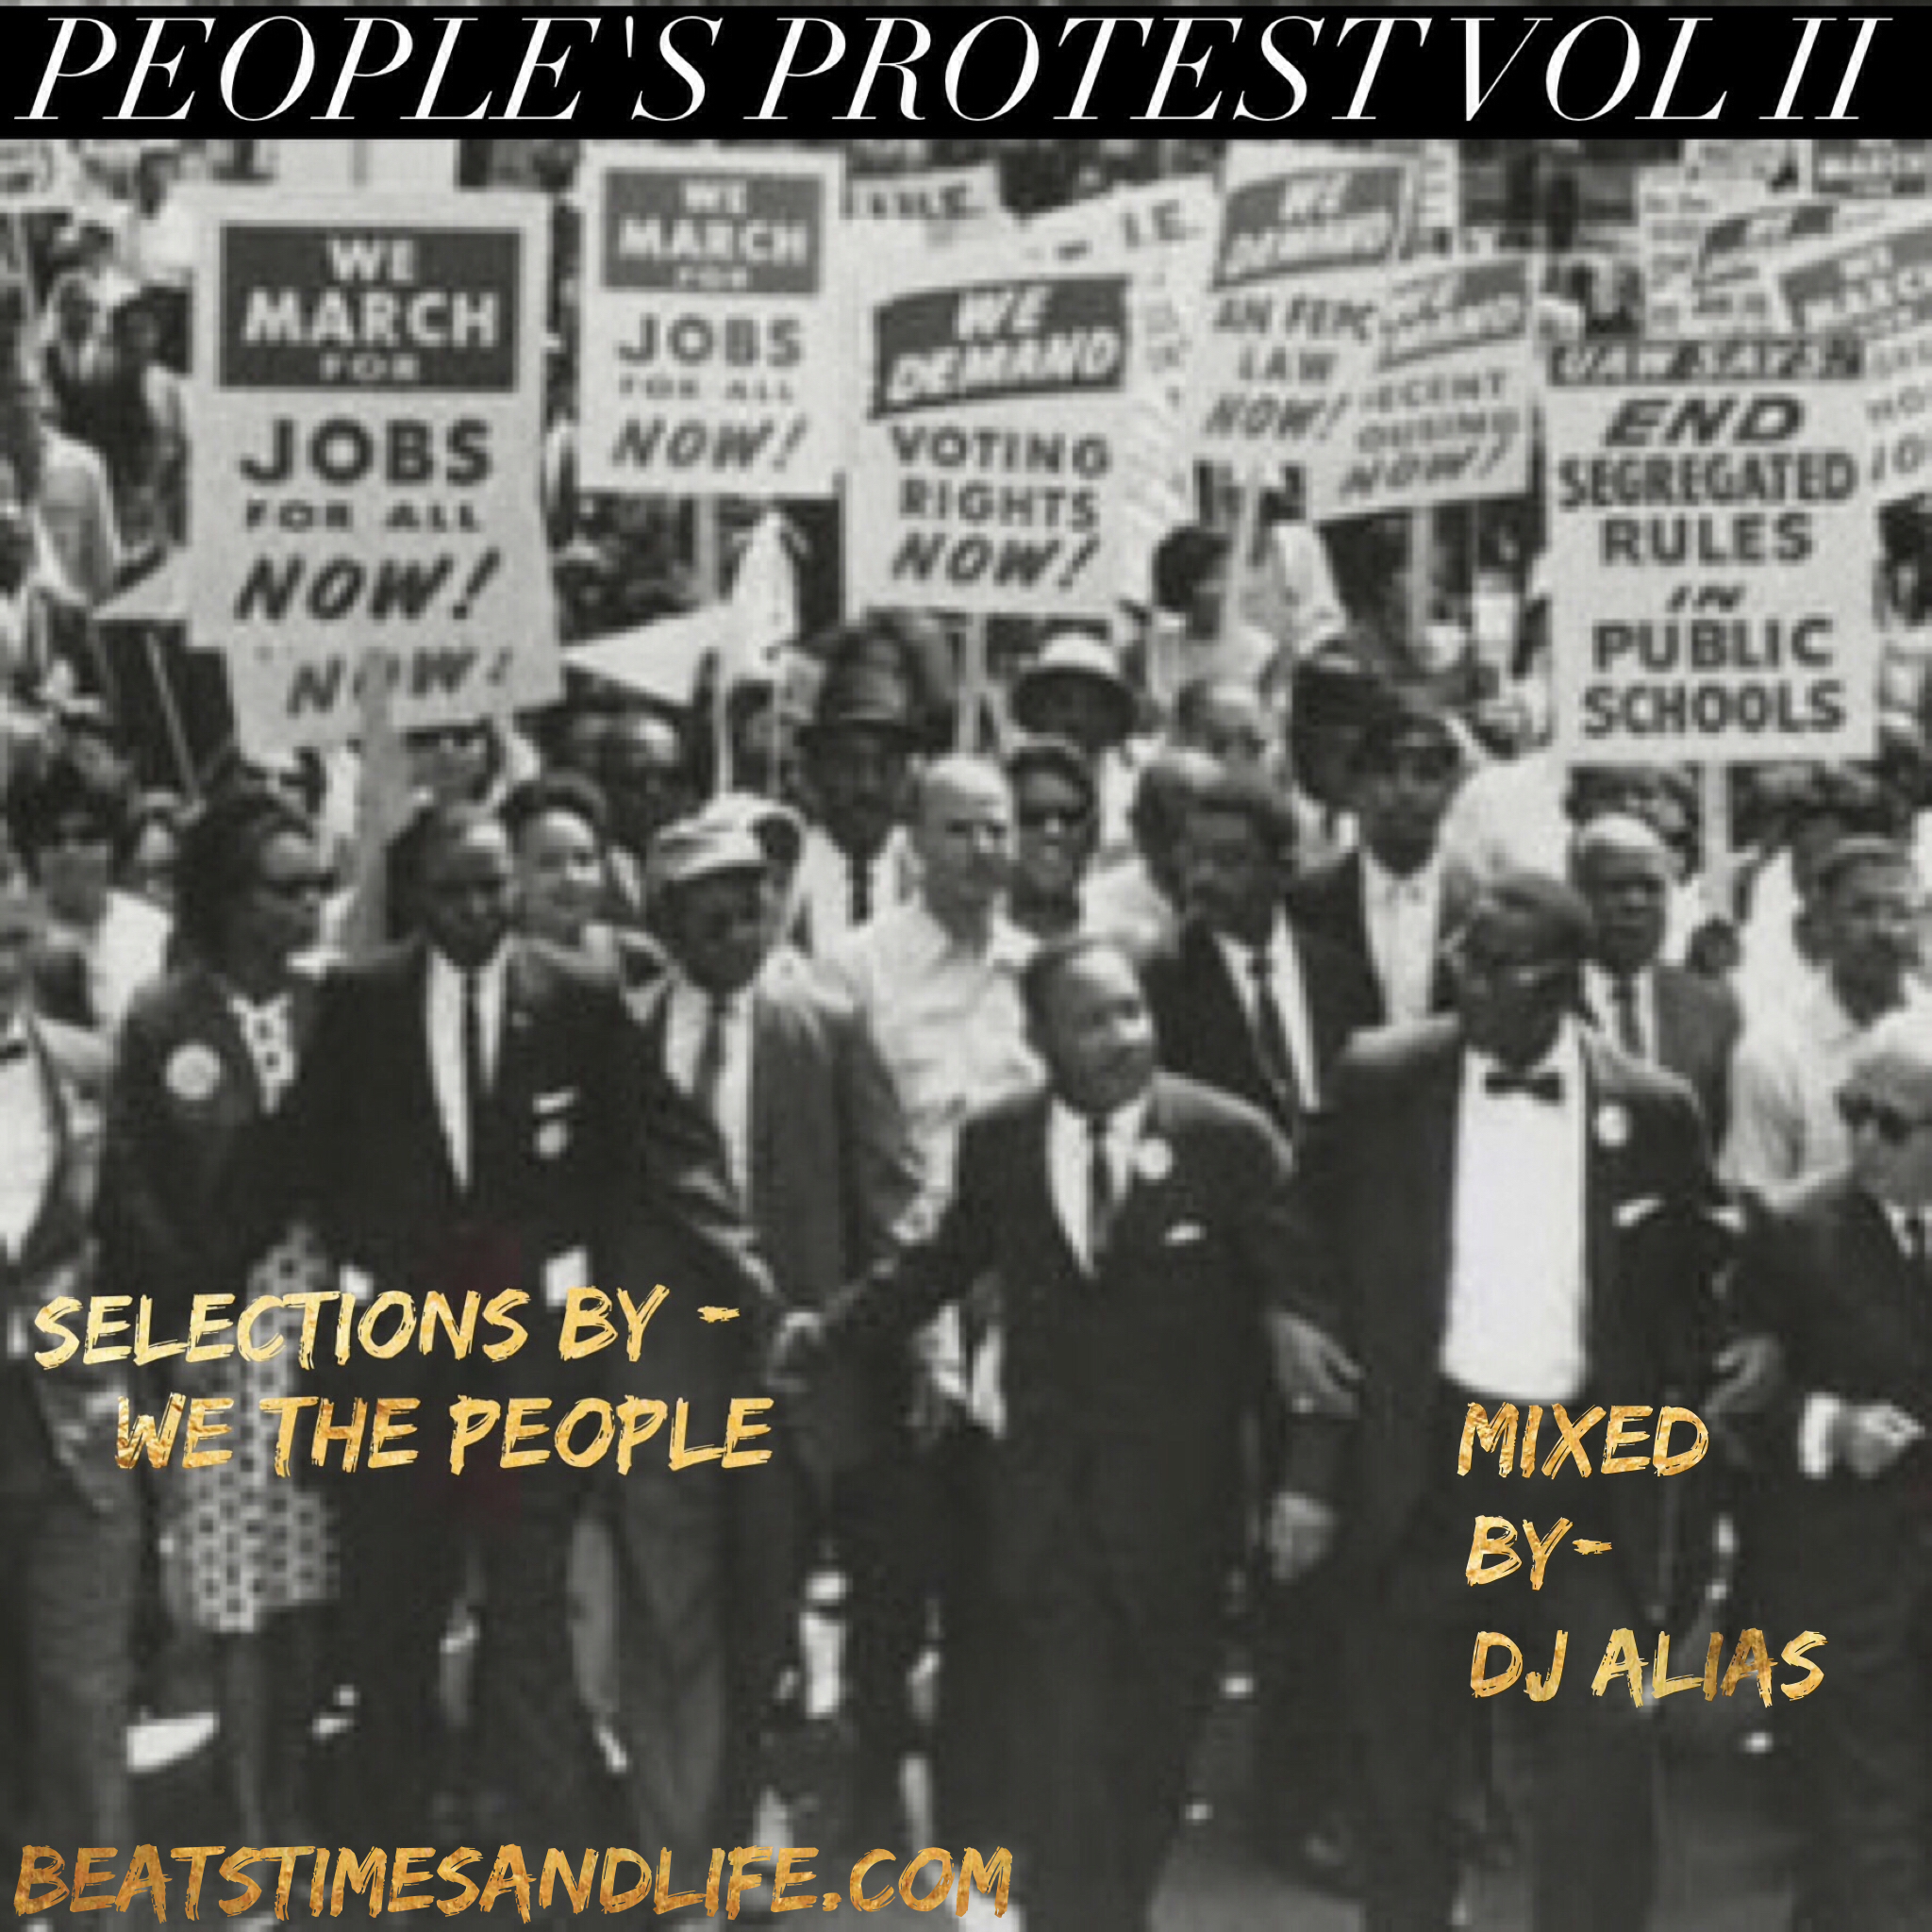 Uncategorized archives page 2 of 5 beats times and life peoples protest vol ii malvernweather Images